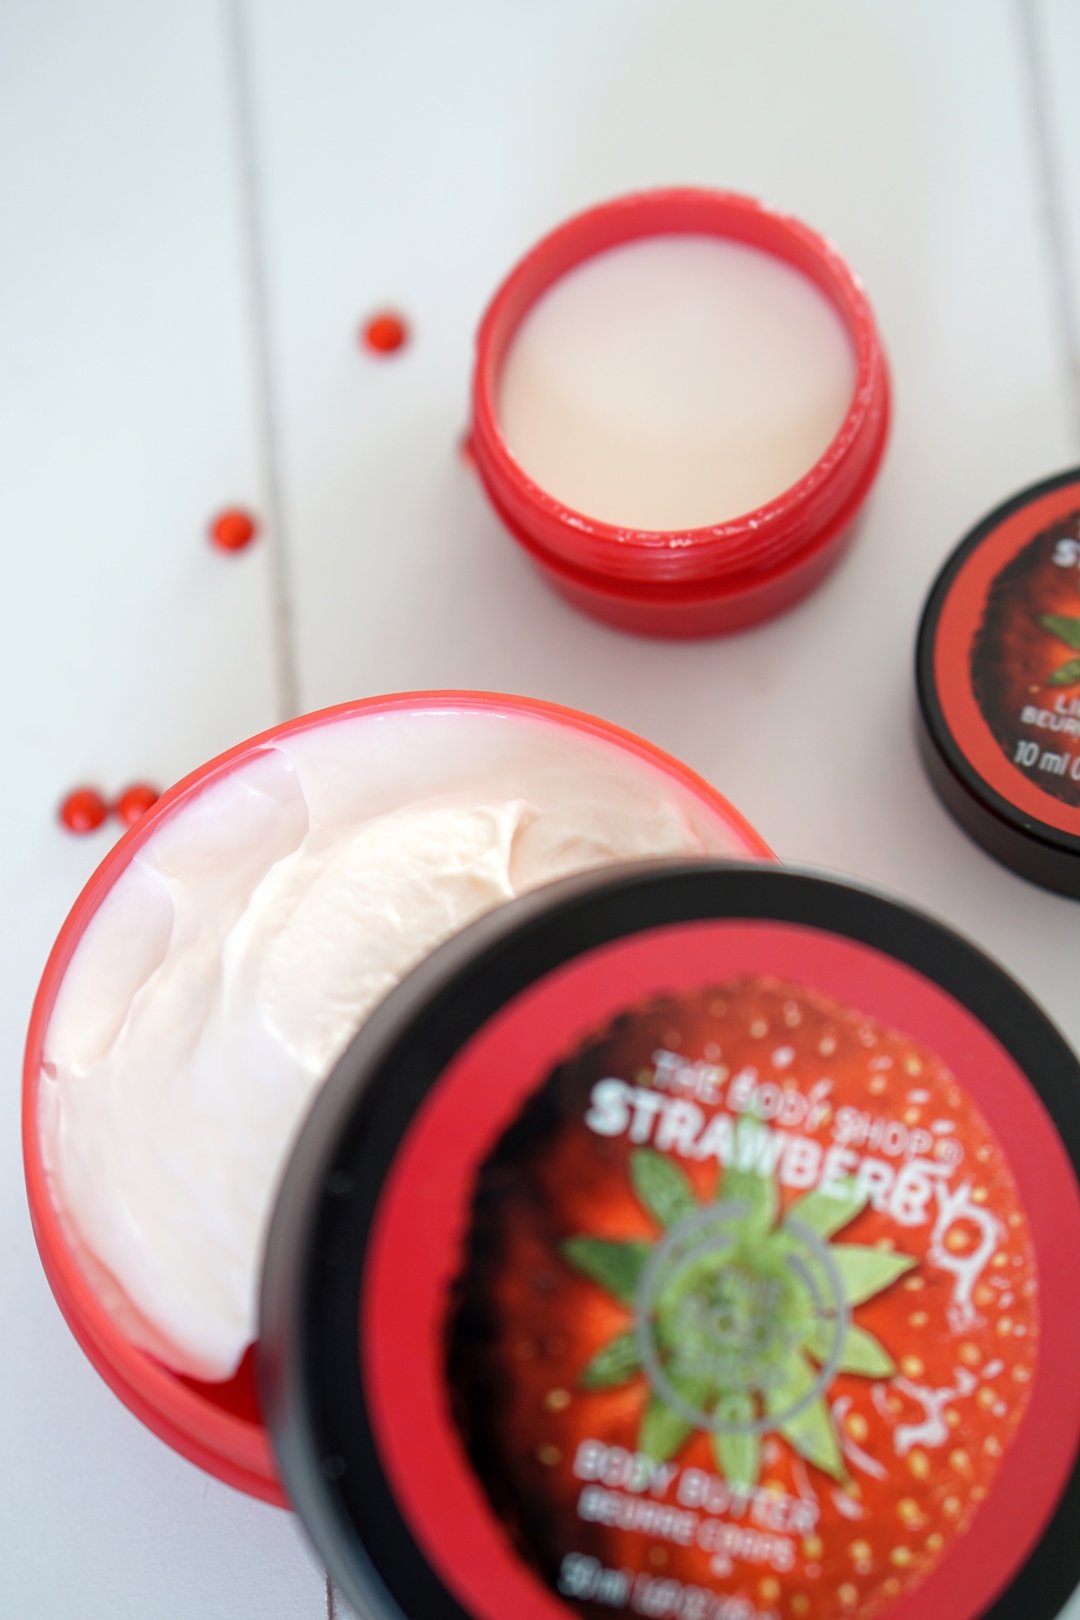 The Body Shop kerst 2016 Vanilla Chai | Frosted Berries